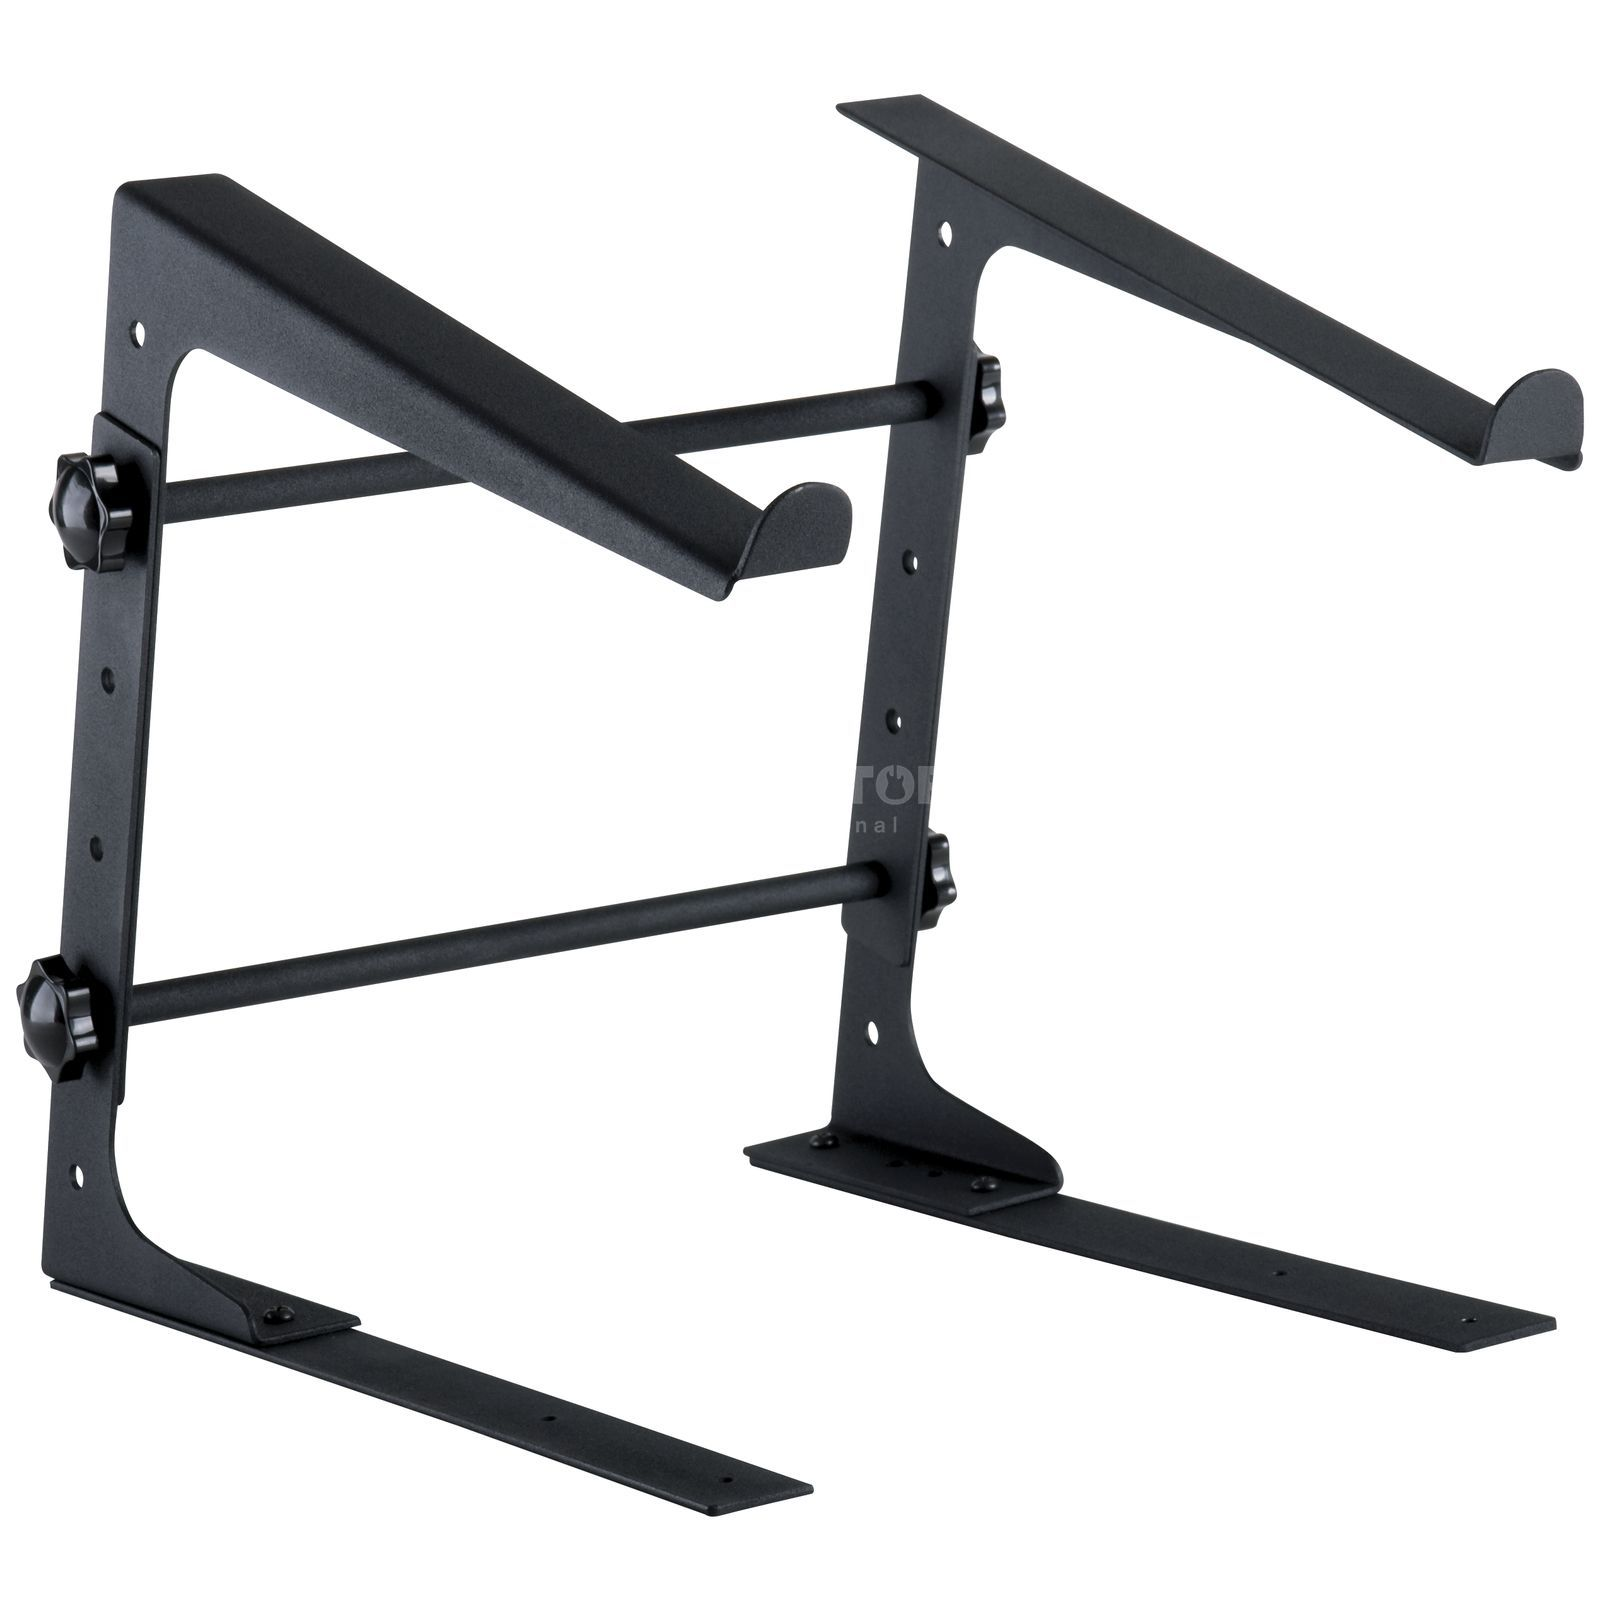 Fame audio LS-1 Laptop Stand black  Product Image